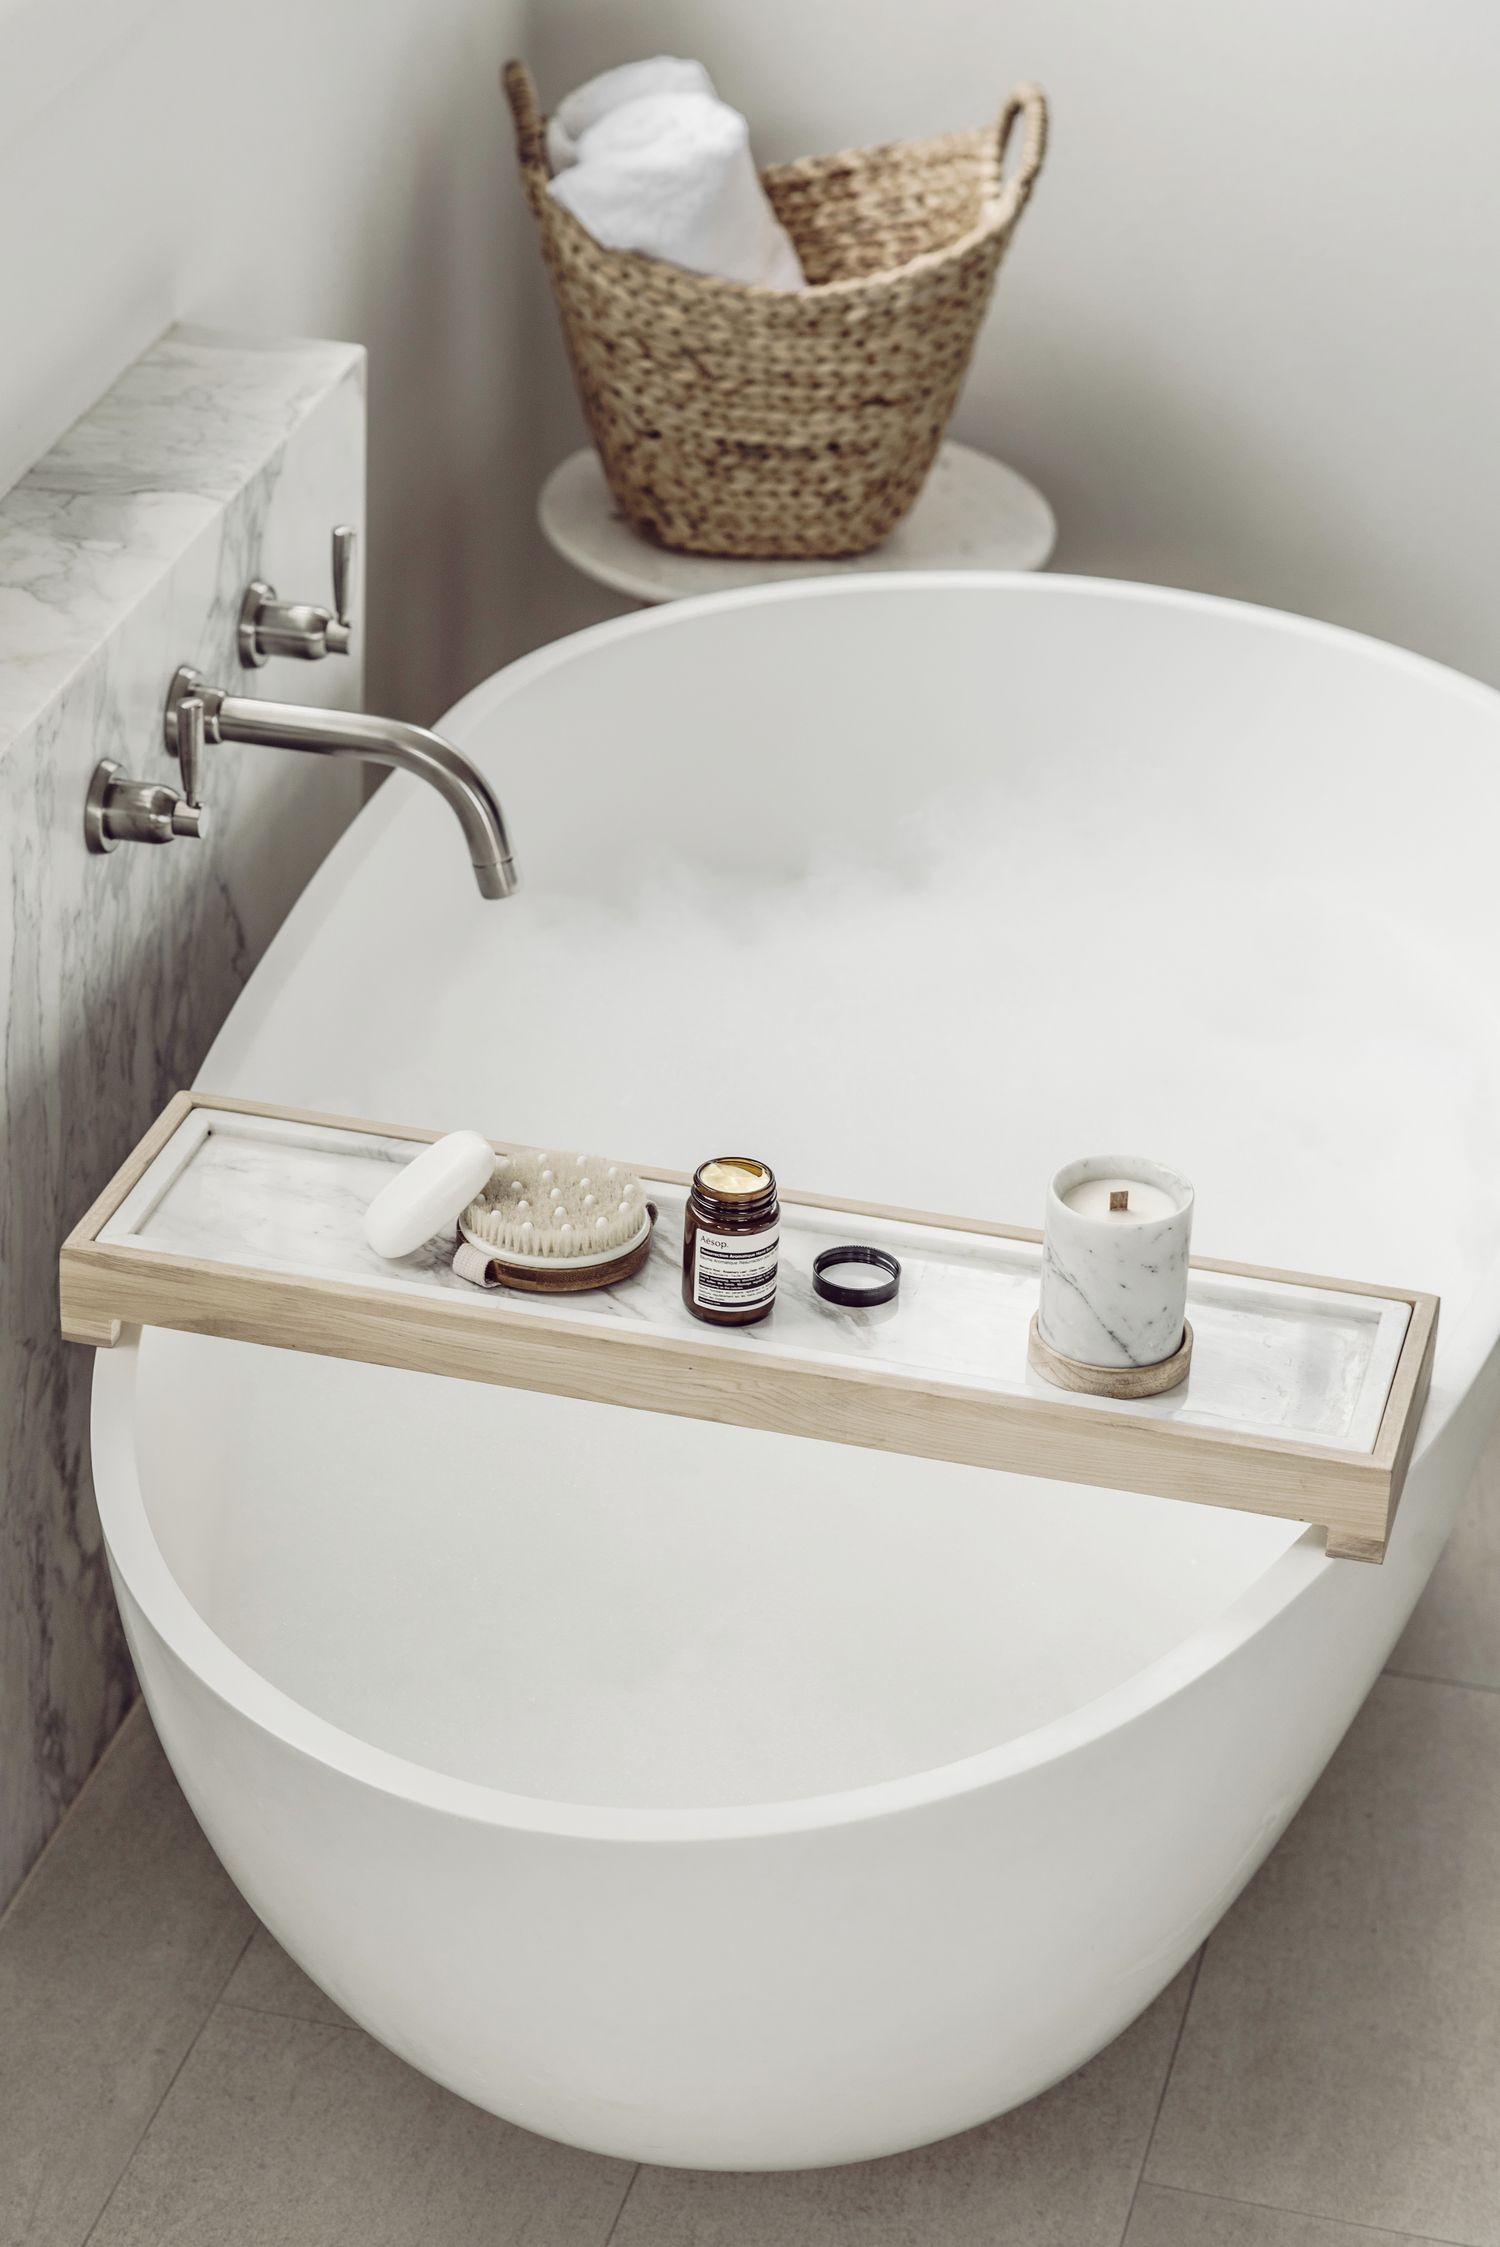 Marble bath caddy... | Home | Pinterest | Bath caddy, Marbles and Bath